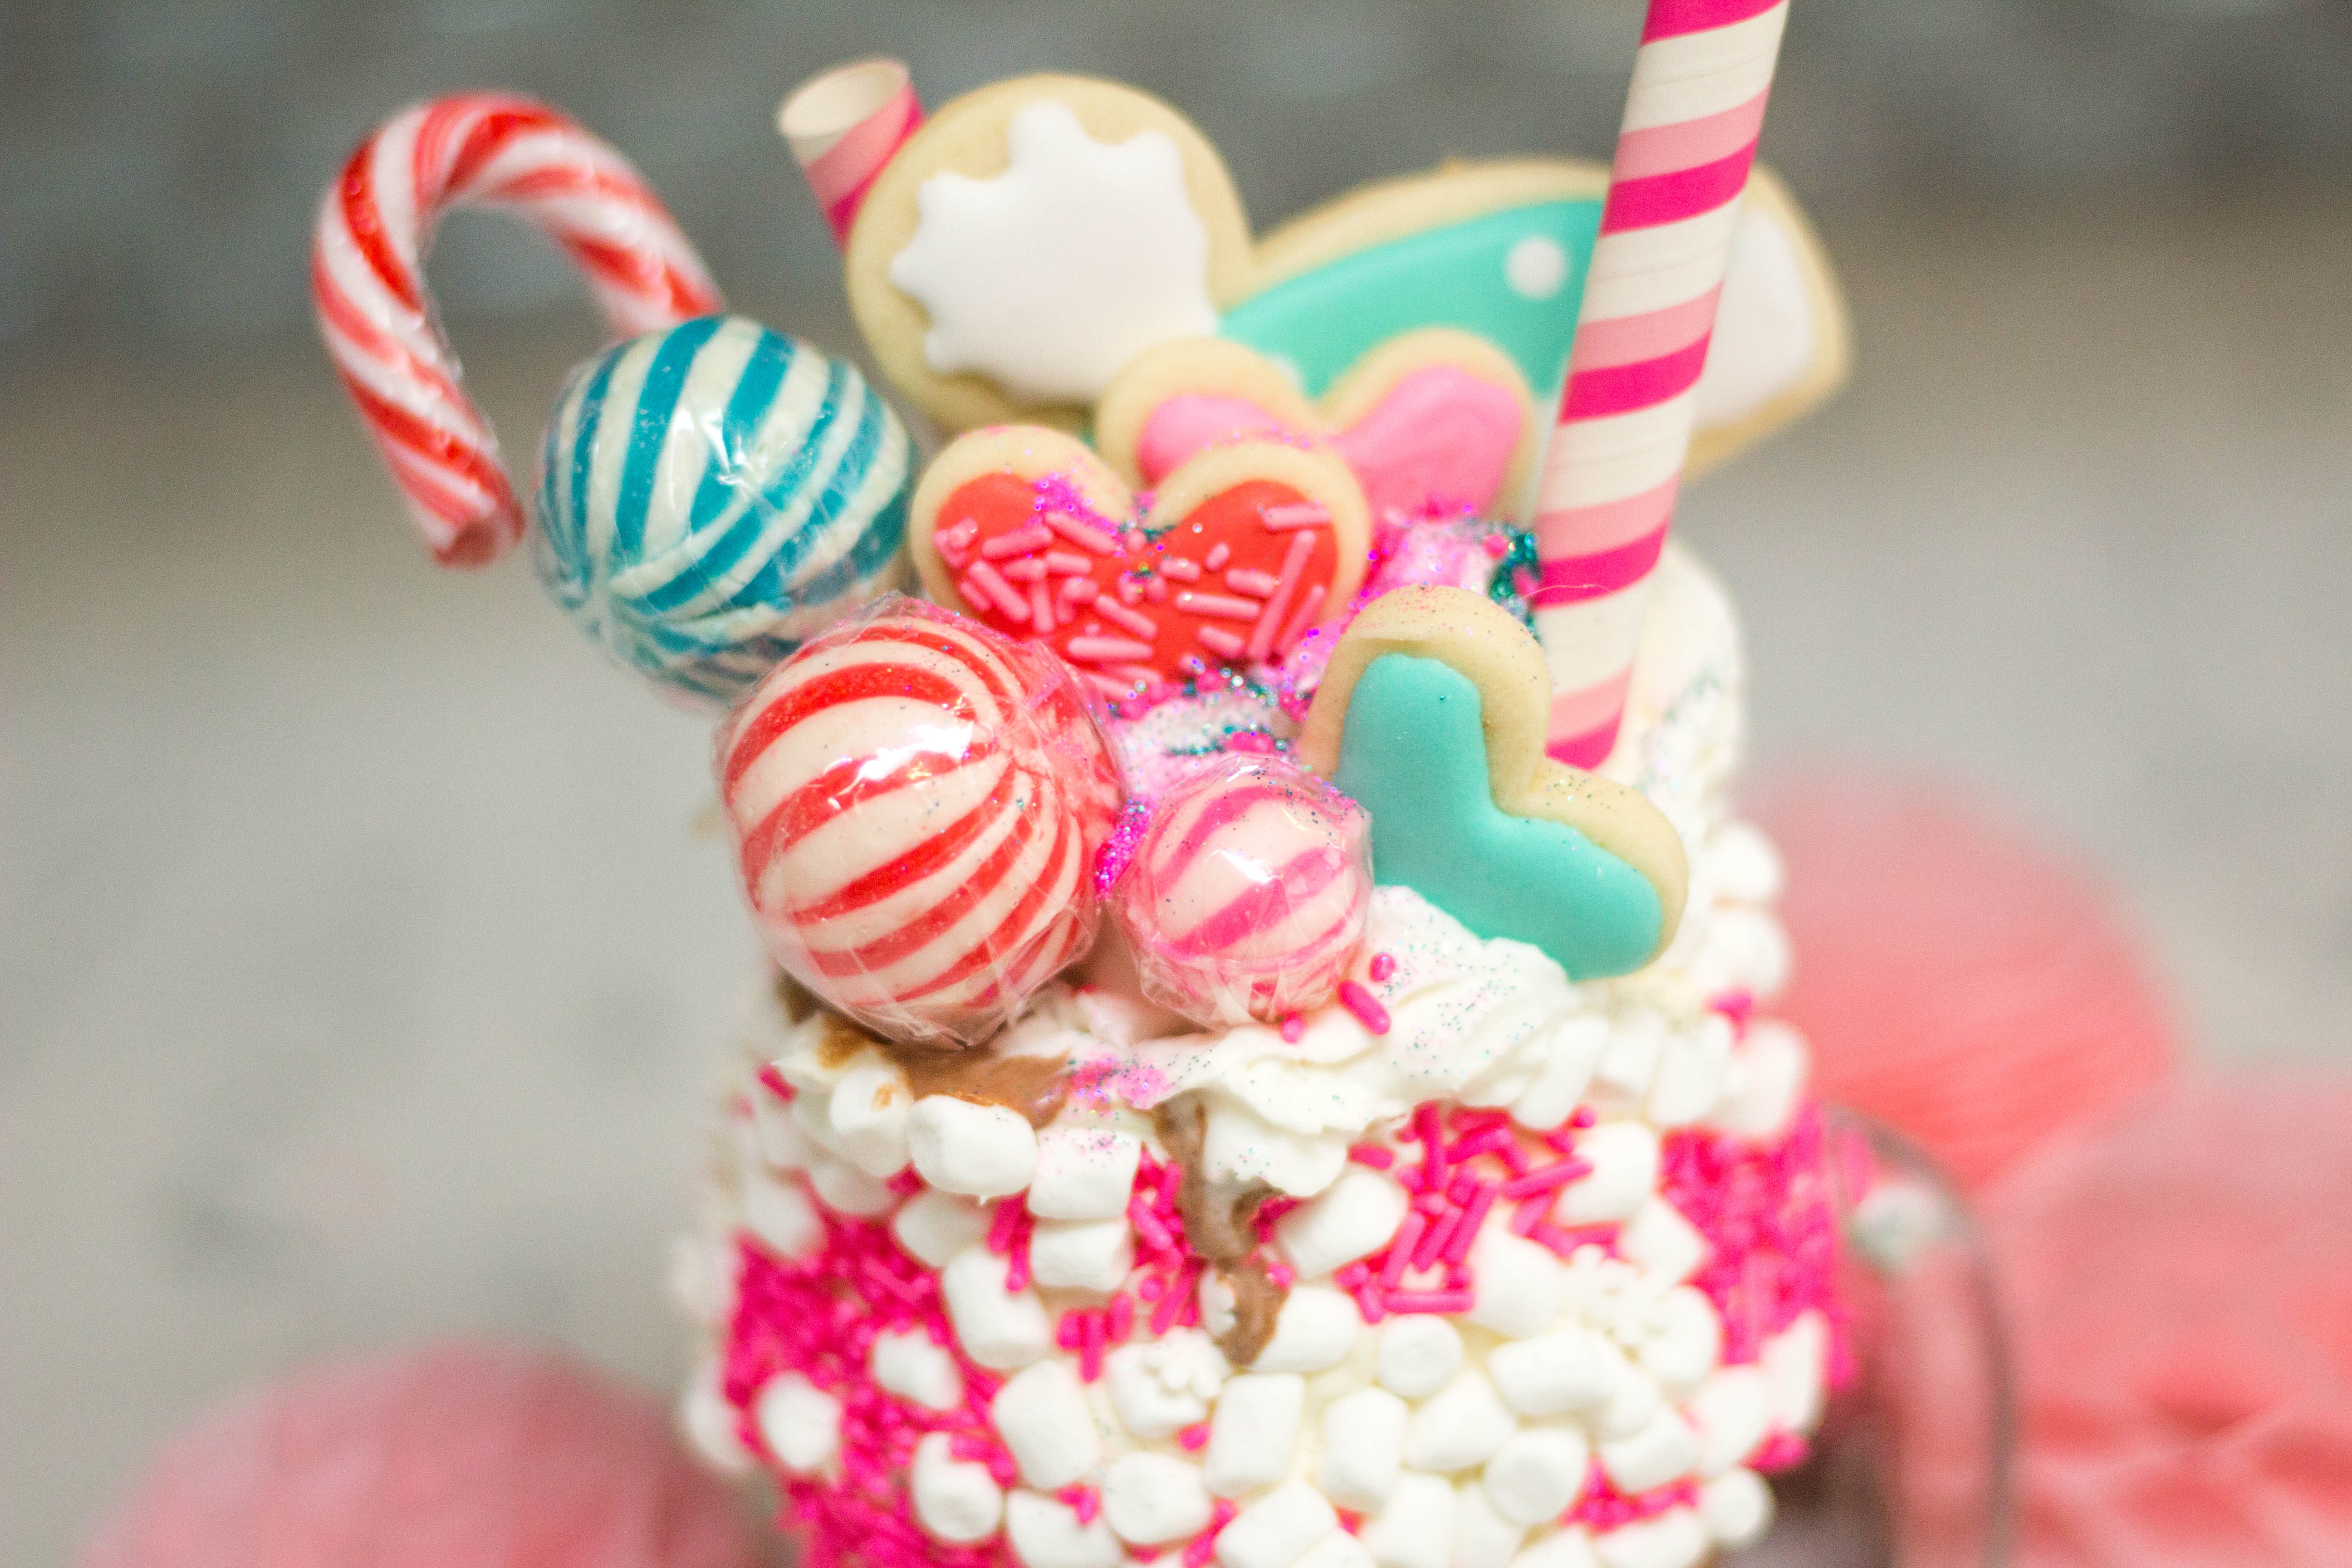 winter-baking-ice-cream-freak-shake-creative-desserts-overload-27